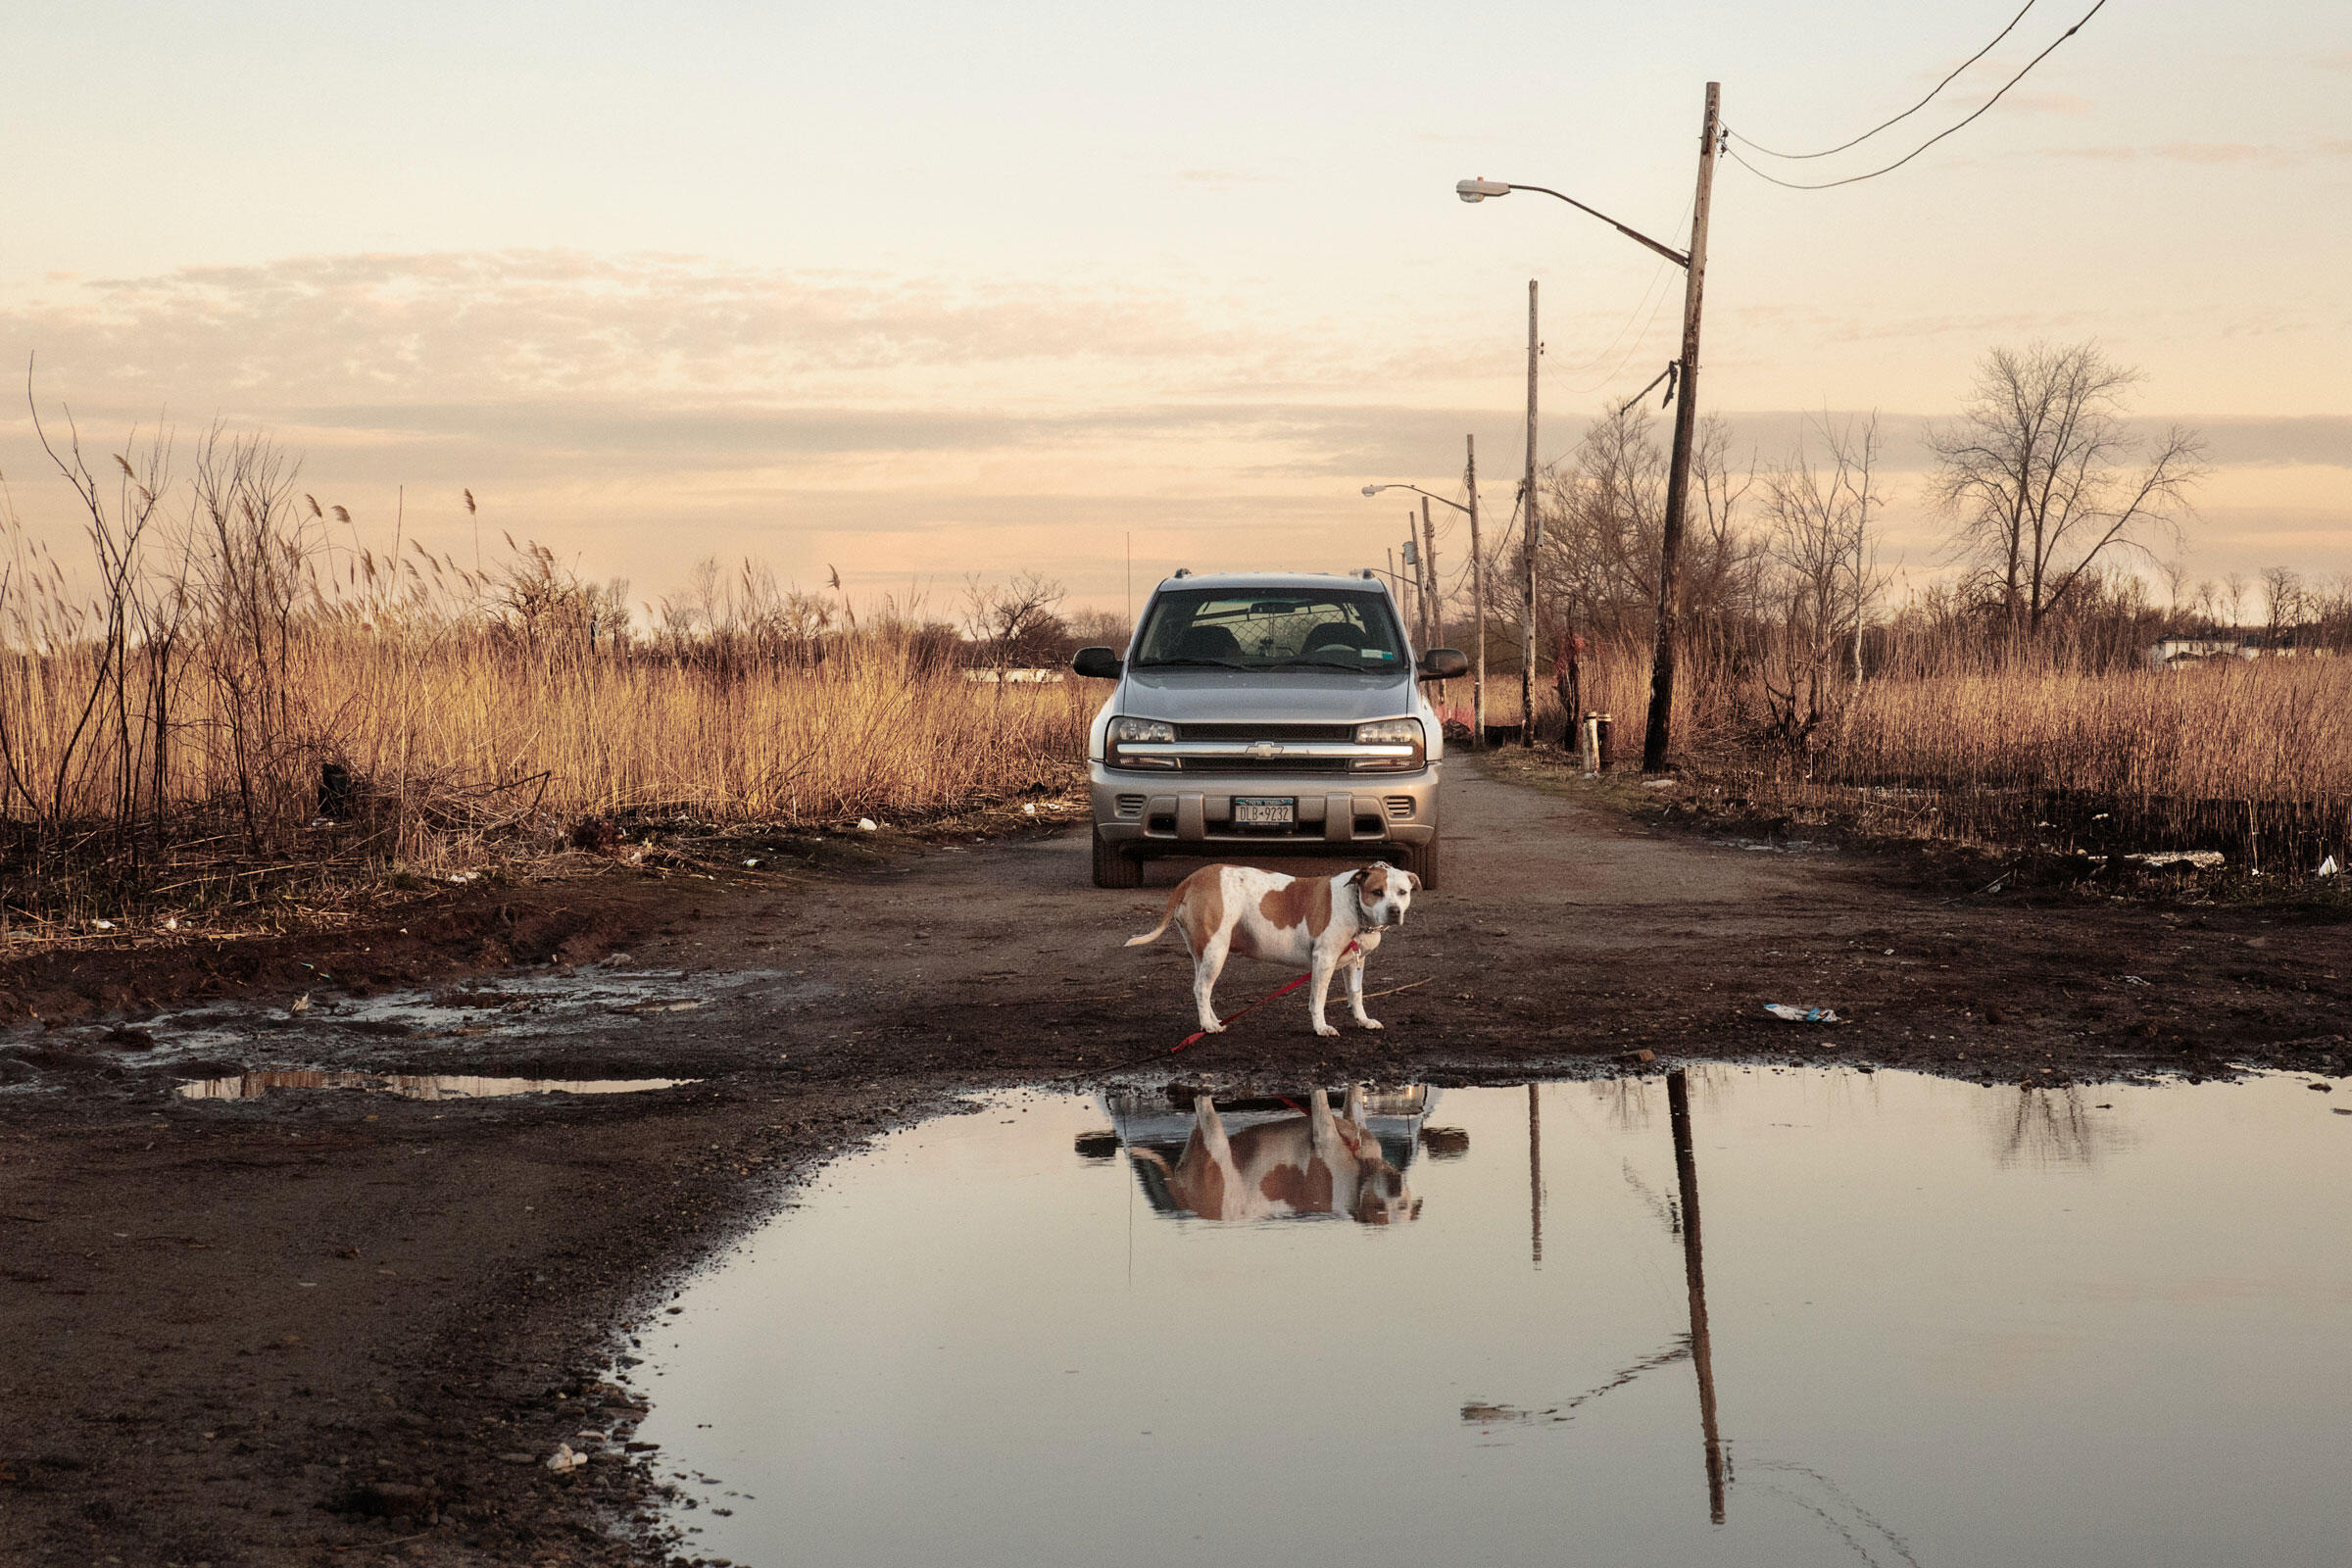 Baby, one of Franca Costa's rescue dogs, awaits her ride home down deserted Kissam Avenue, Oakwood Beach, Staten Island. April 14, 2016. Hillary Eggers